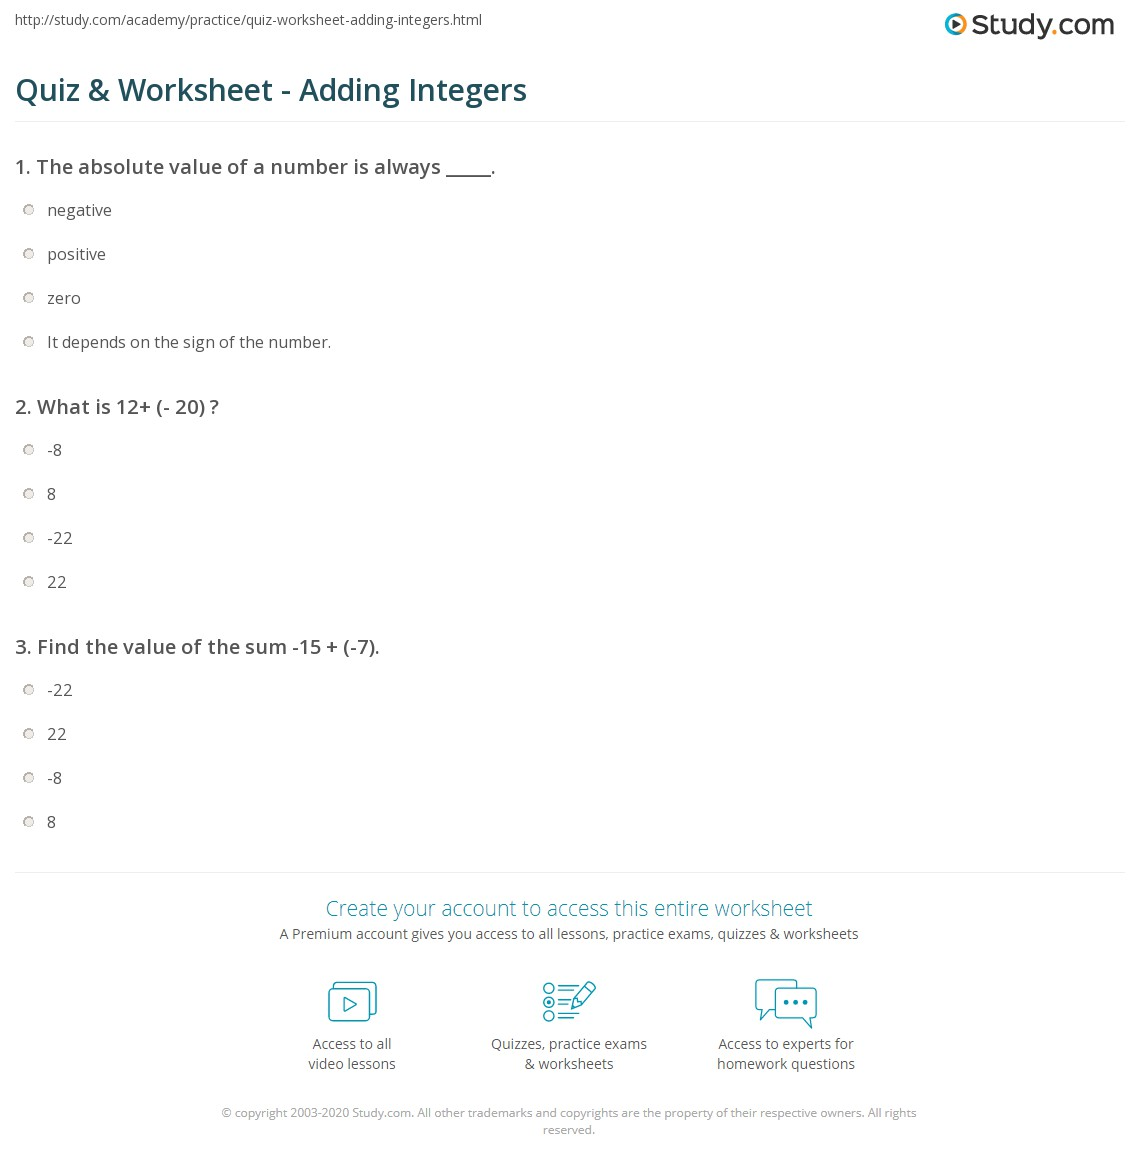 worksheet Adding Integers With Different Signs Worksheets quiz worksheet adding integers study com print rules examples worksheet